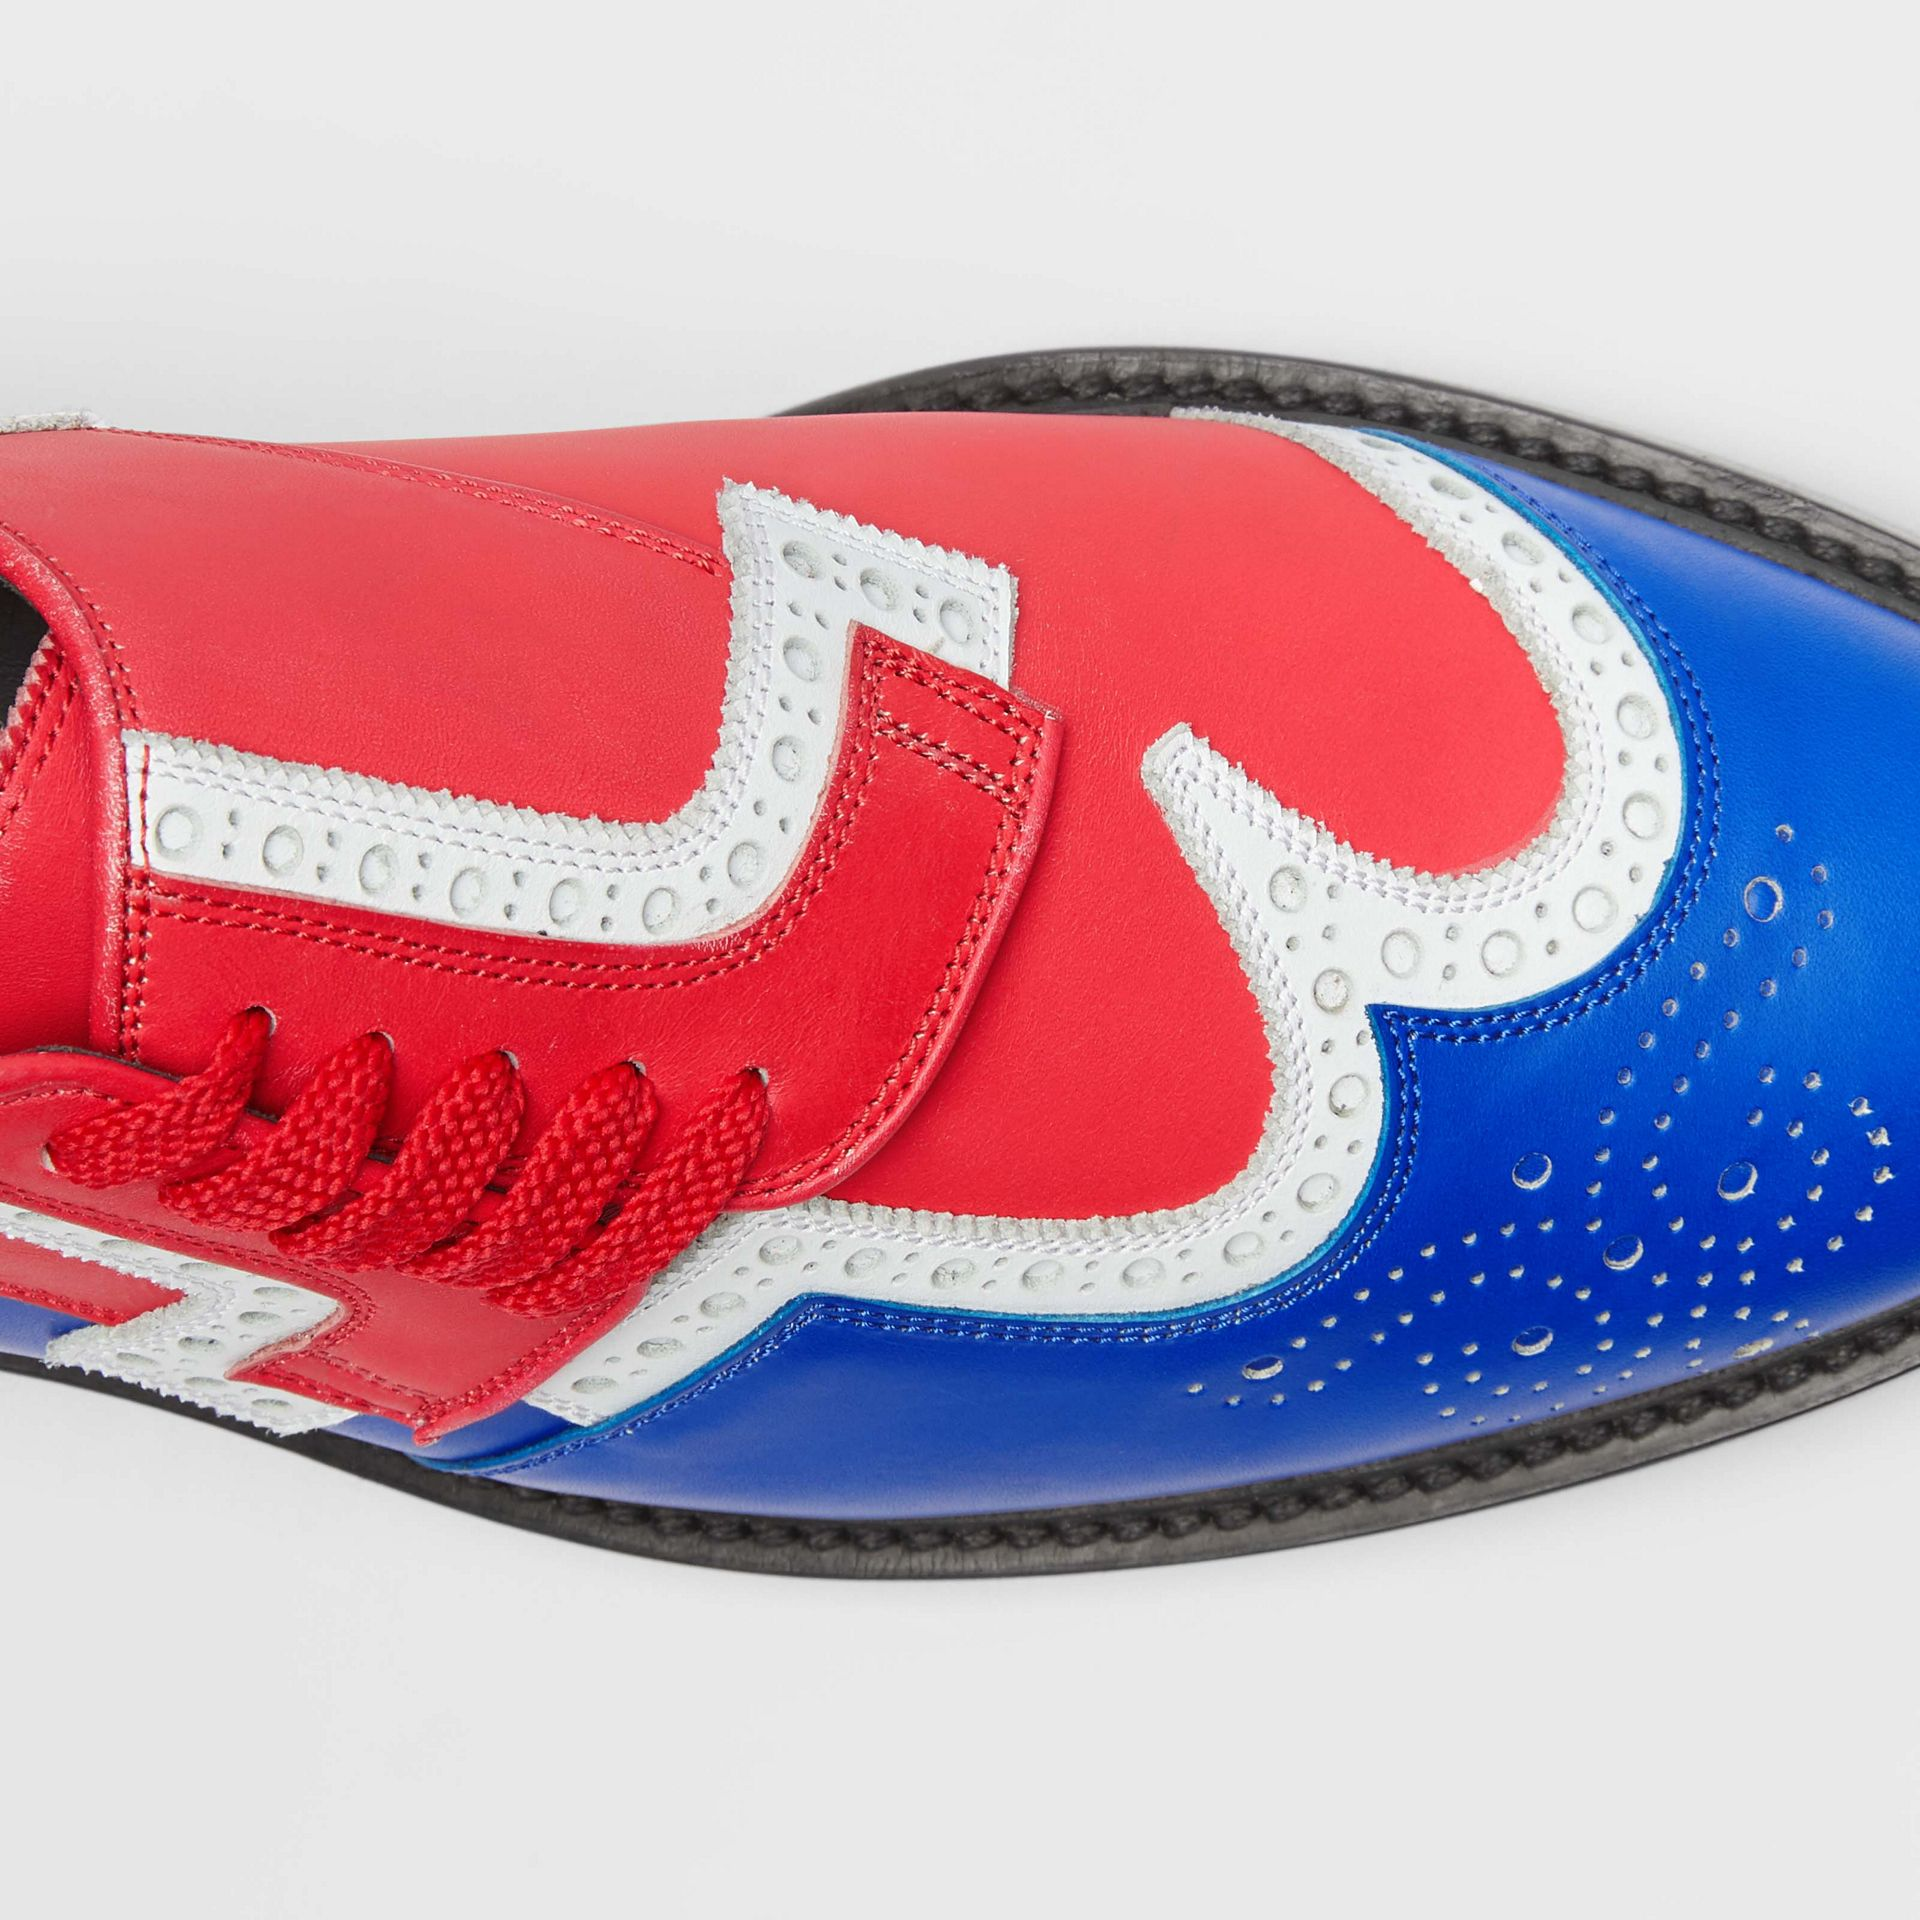 Asymmetric Closure Tri-tone Leather Brogues in Blue/red - Men | Burberry - gallery image 1